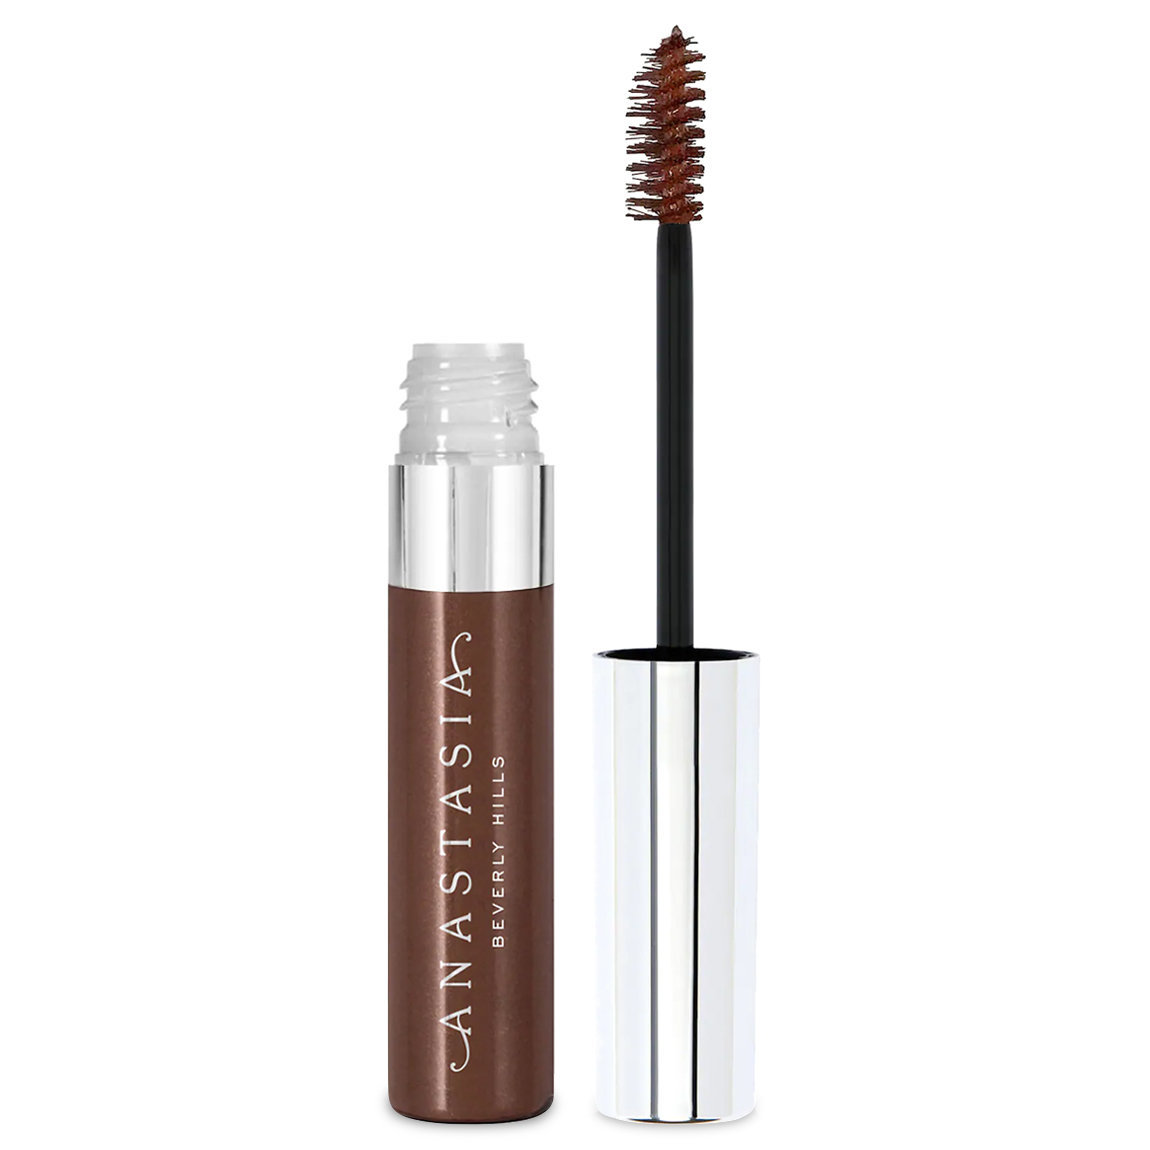 Anastasia Beverly Hills Tinted Brow Gel Auburn alternative view 1.